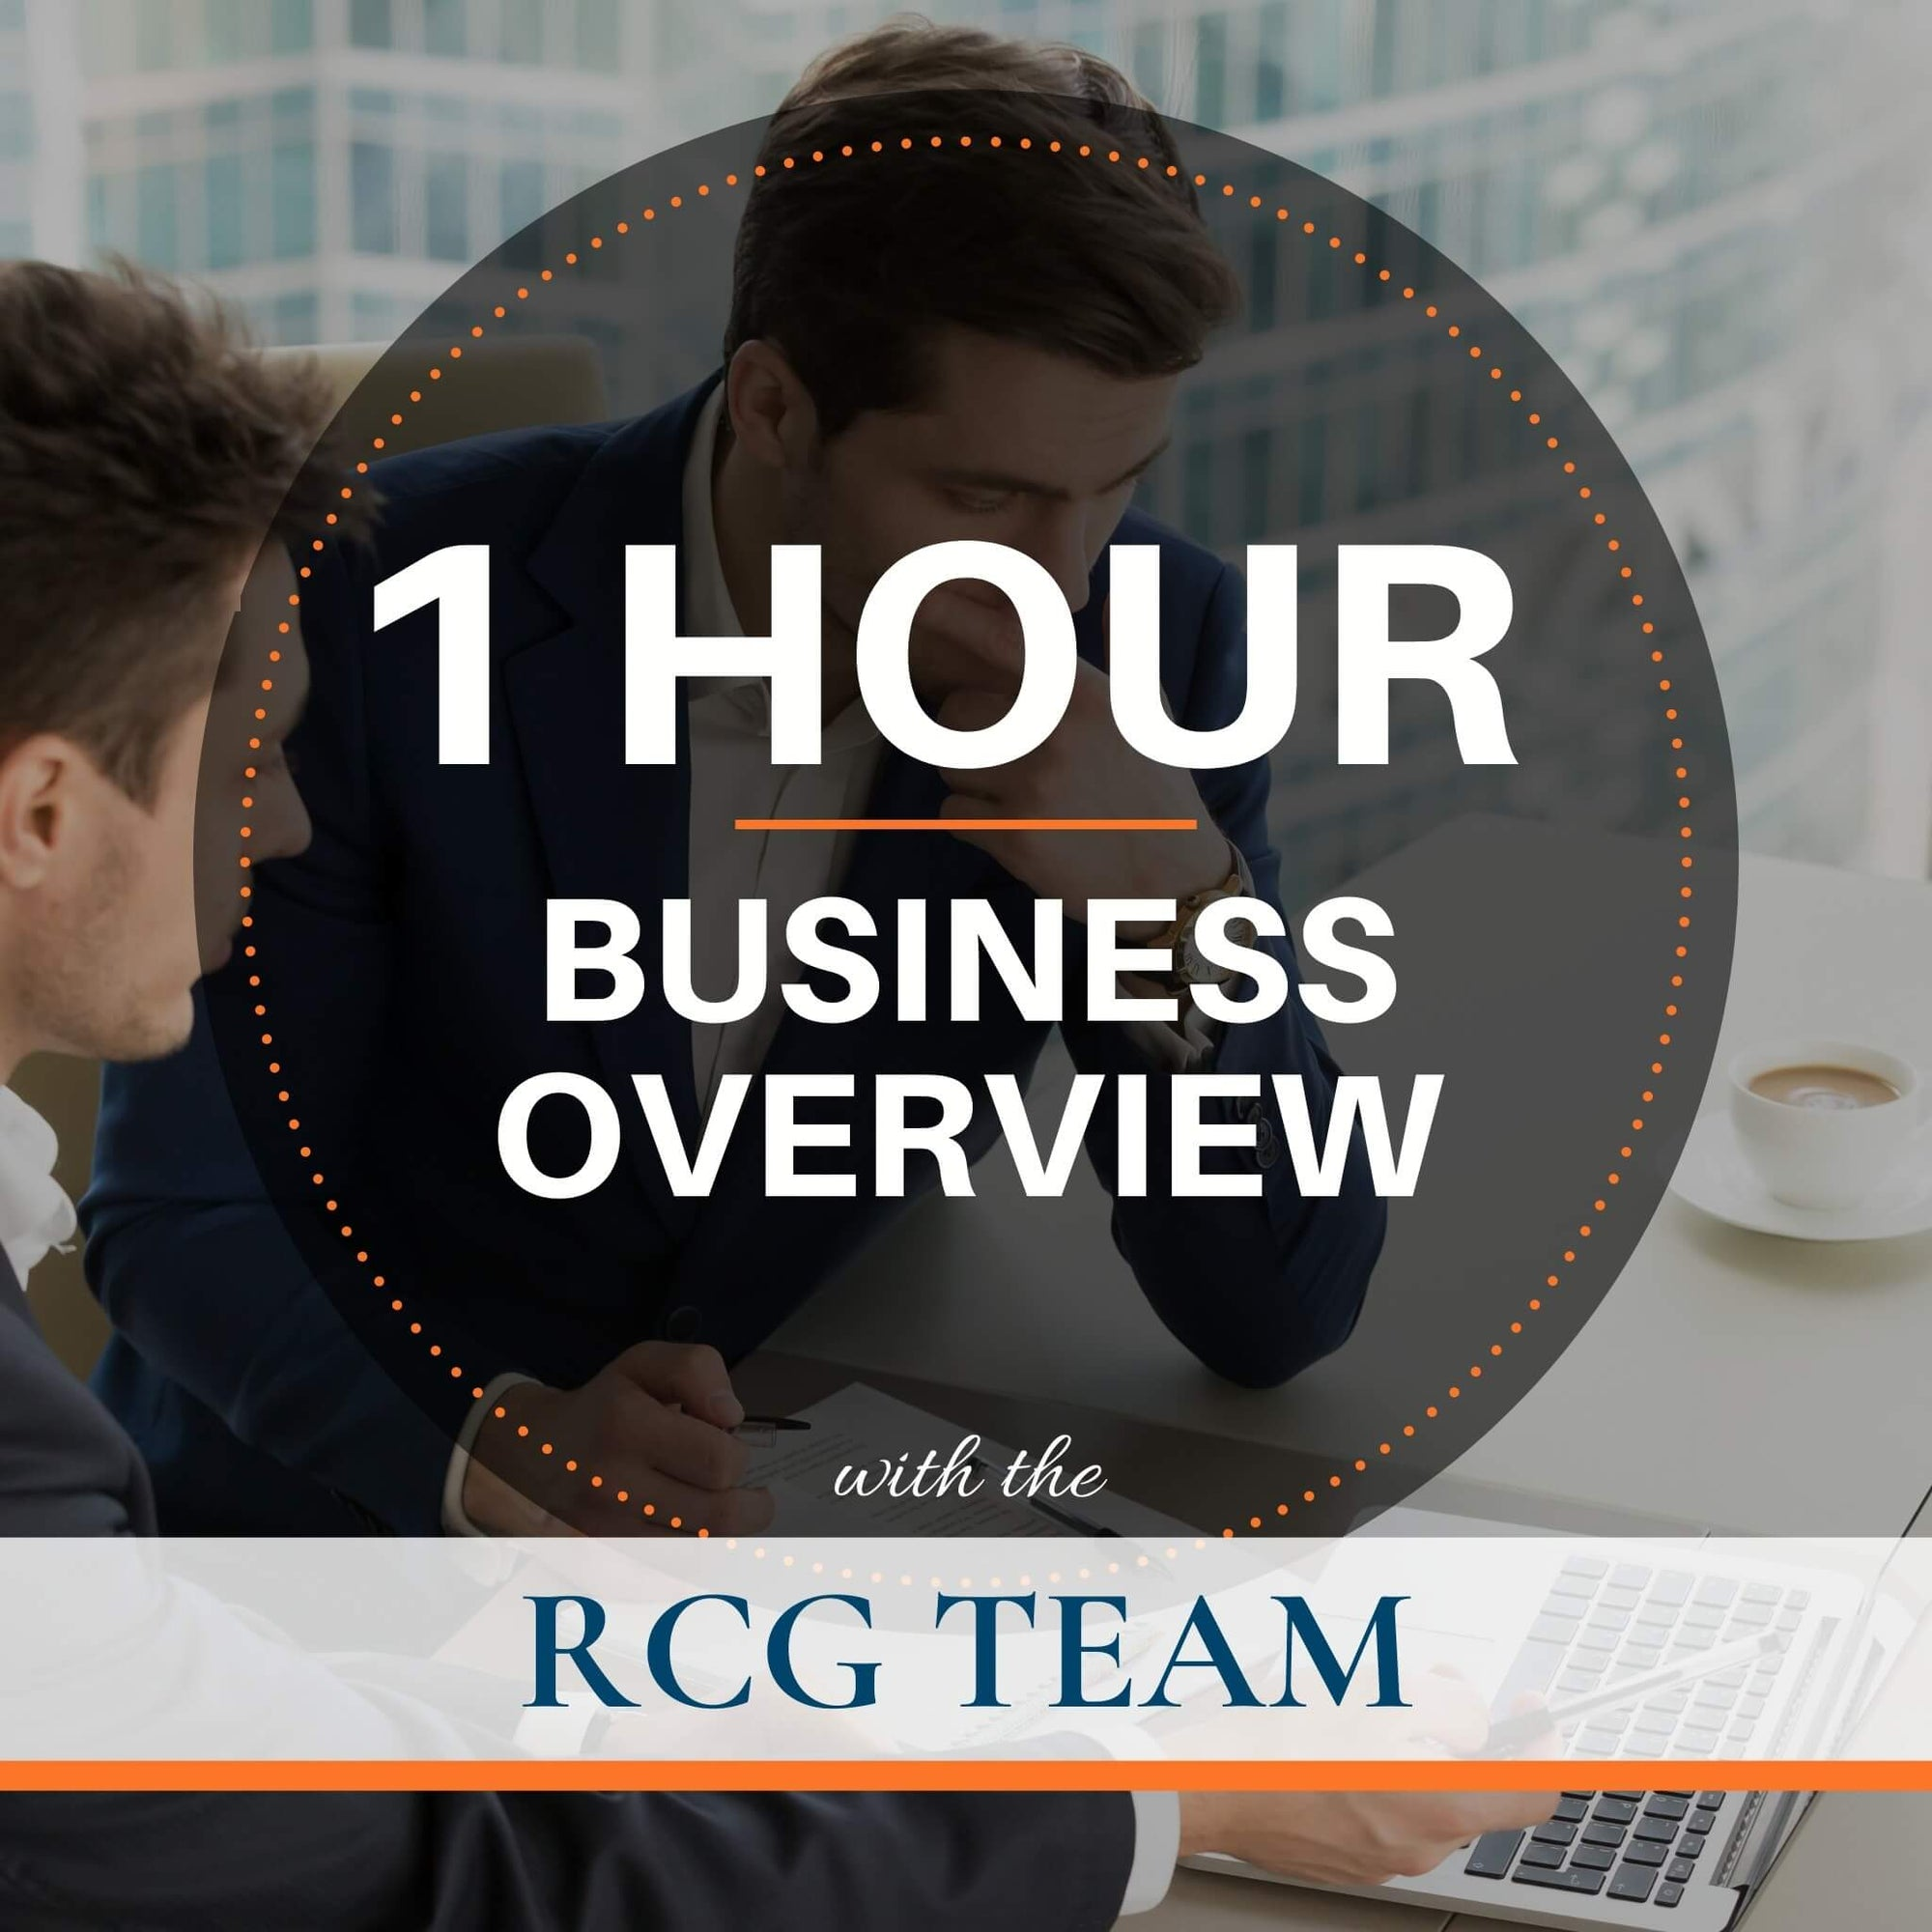 1 Hour Business Overview With The RCG Team